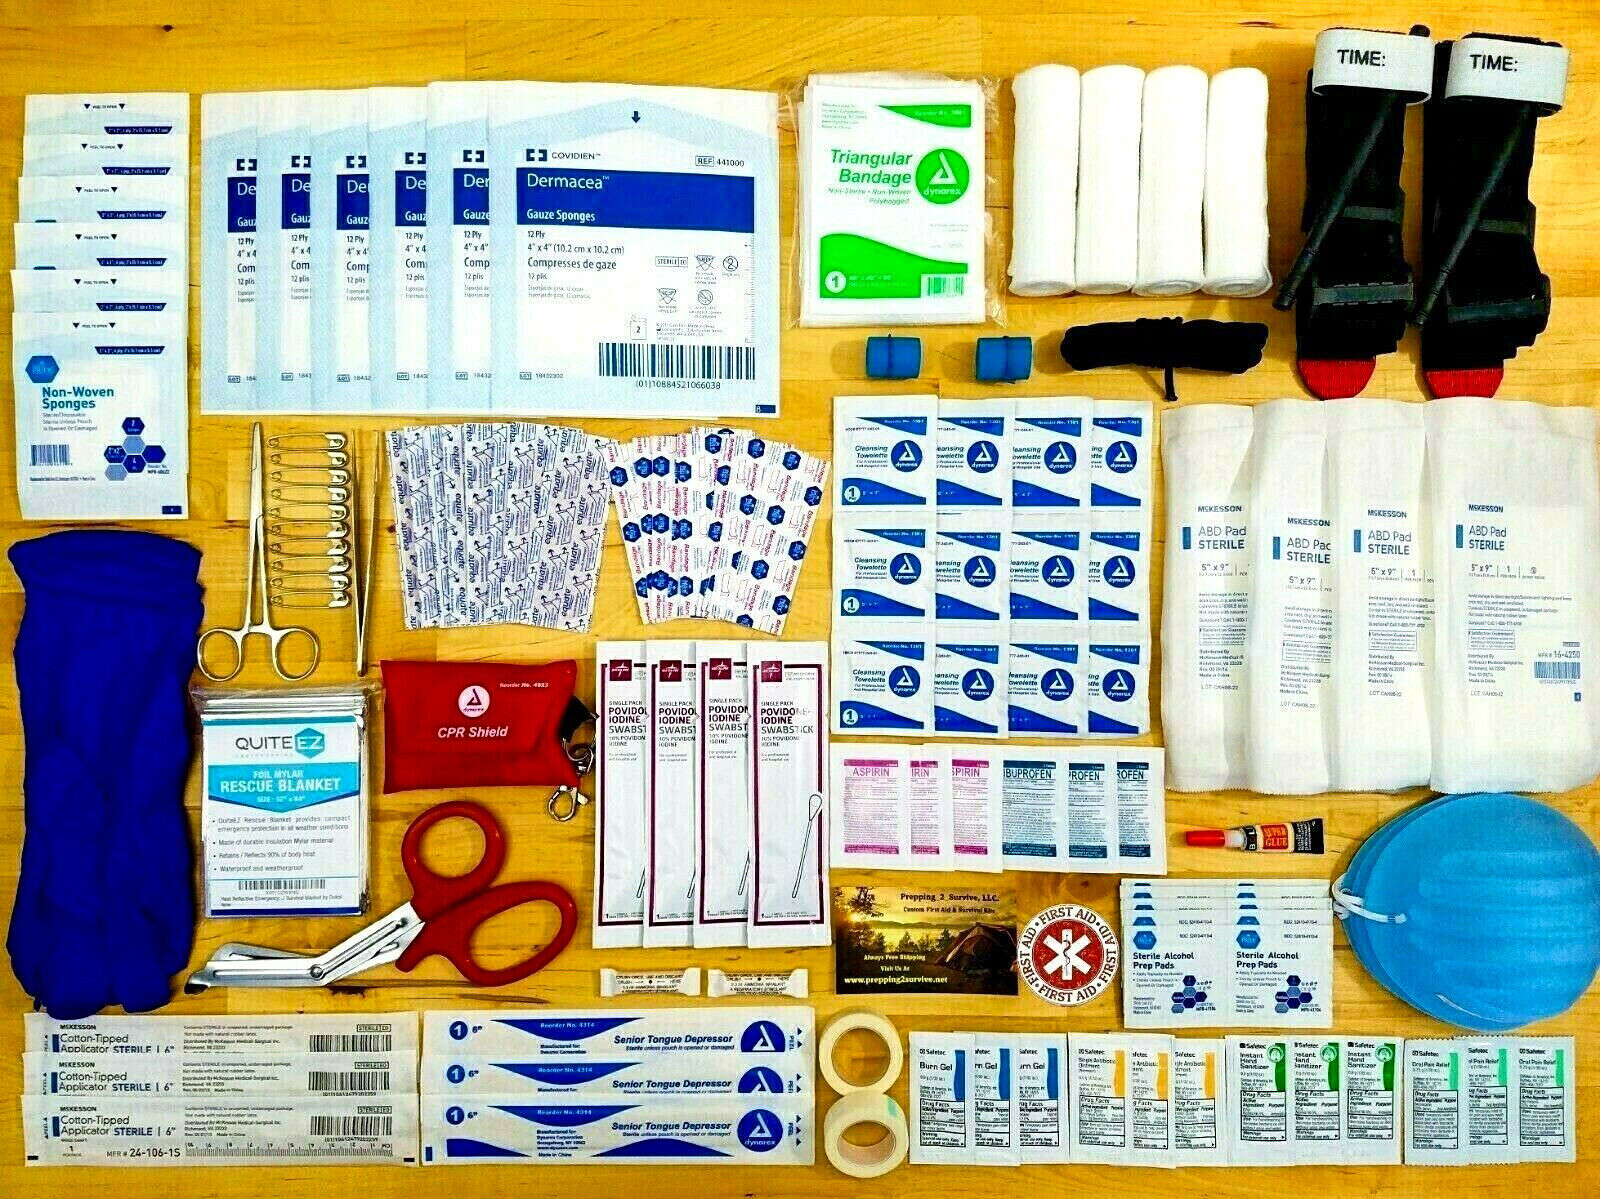 NEW FIRST AID TRAUMA KIT - TACTICAL WOUND CARE EMERGENCY DISASTER PACK - MEDICAL KIT